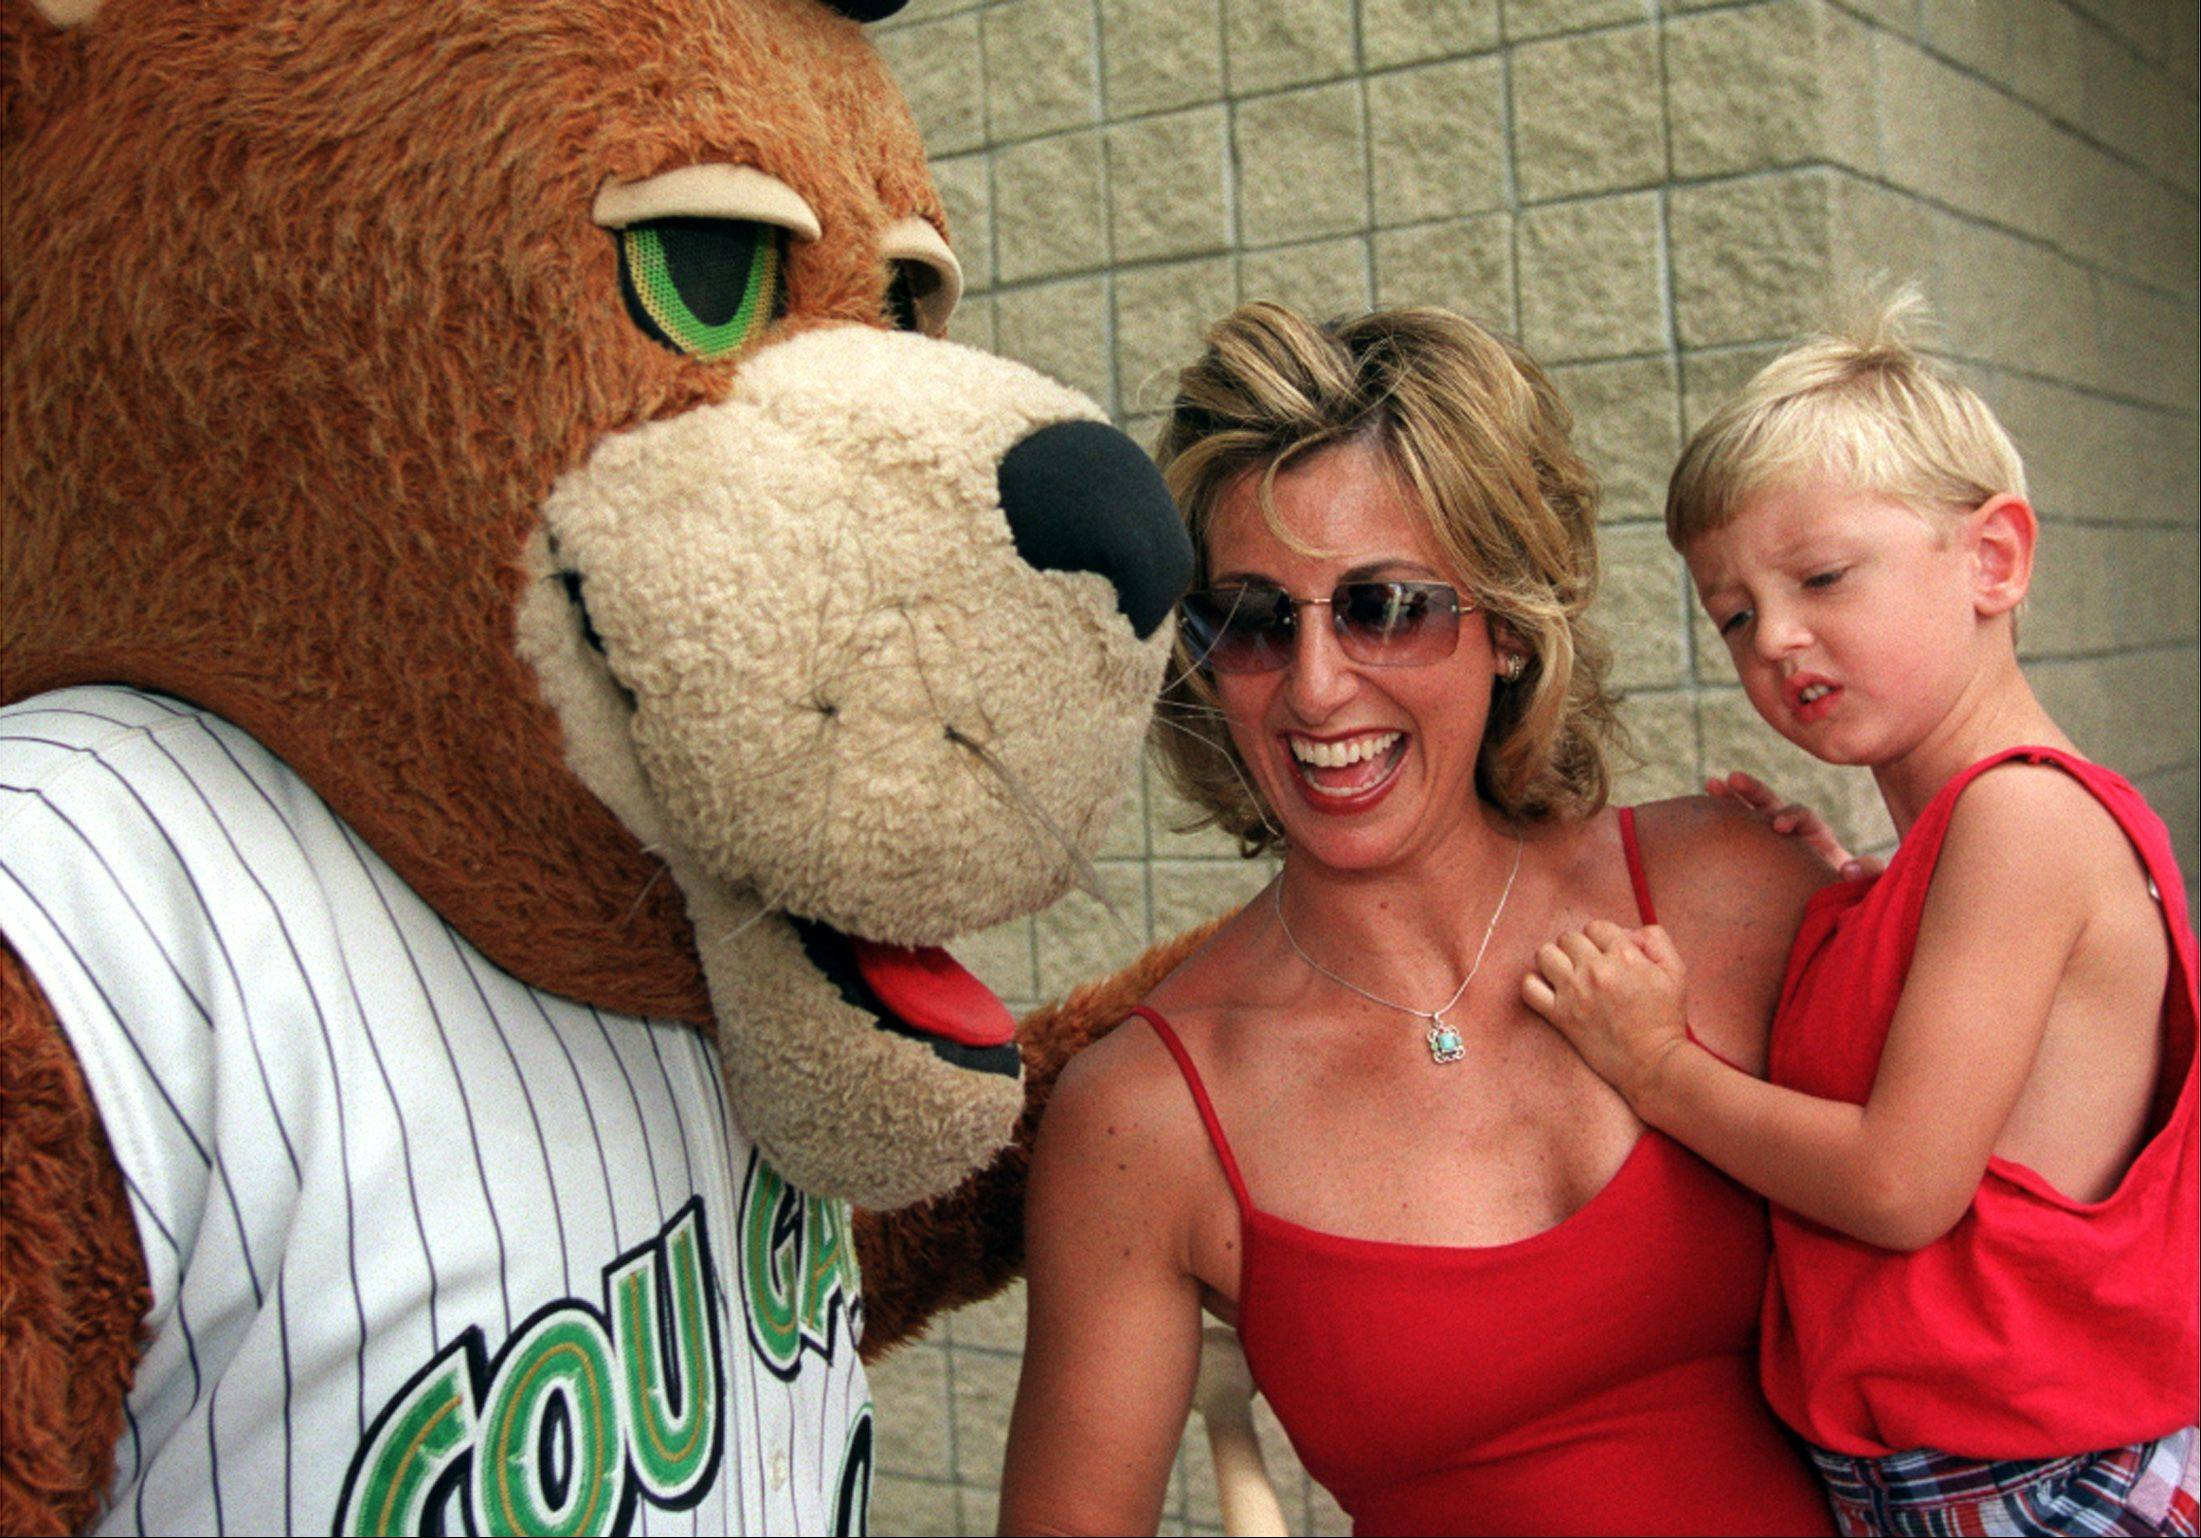 Kane County Cougars could set attendance record Saturday